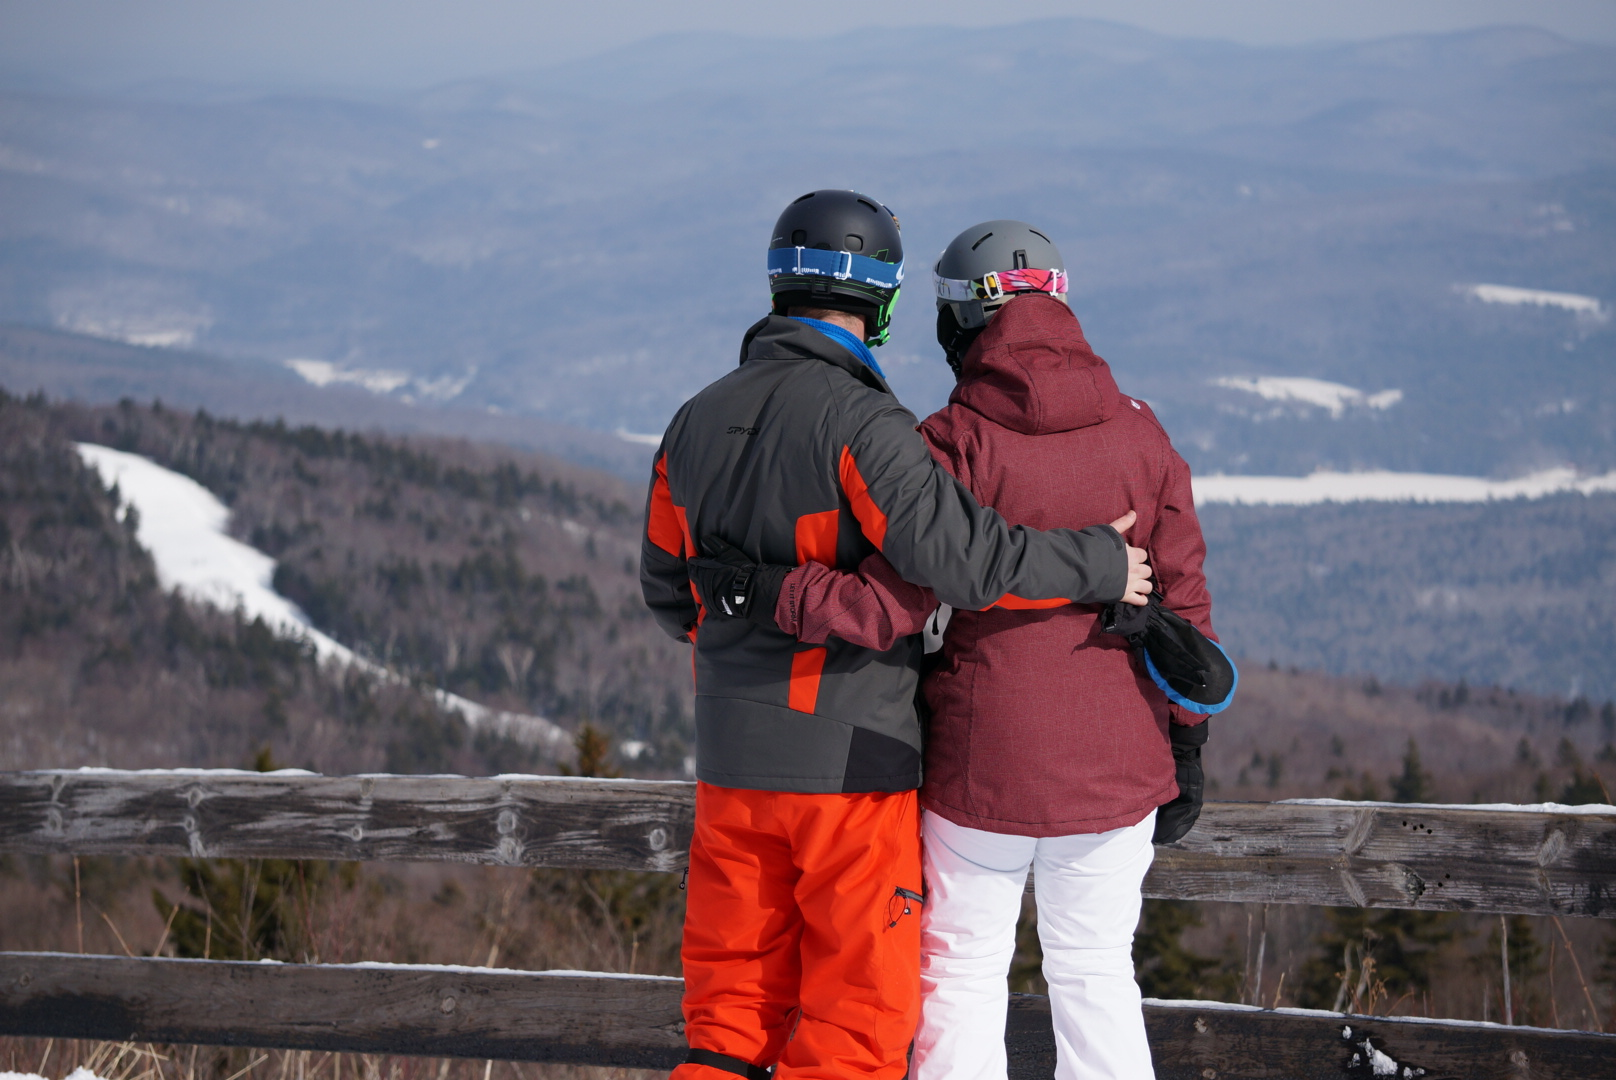 Image 1 of Sarah and Jimmy | The Perfect Mountaintop Proposal